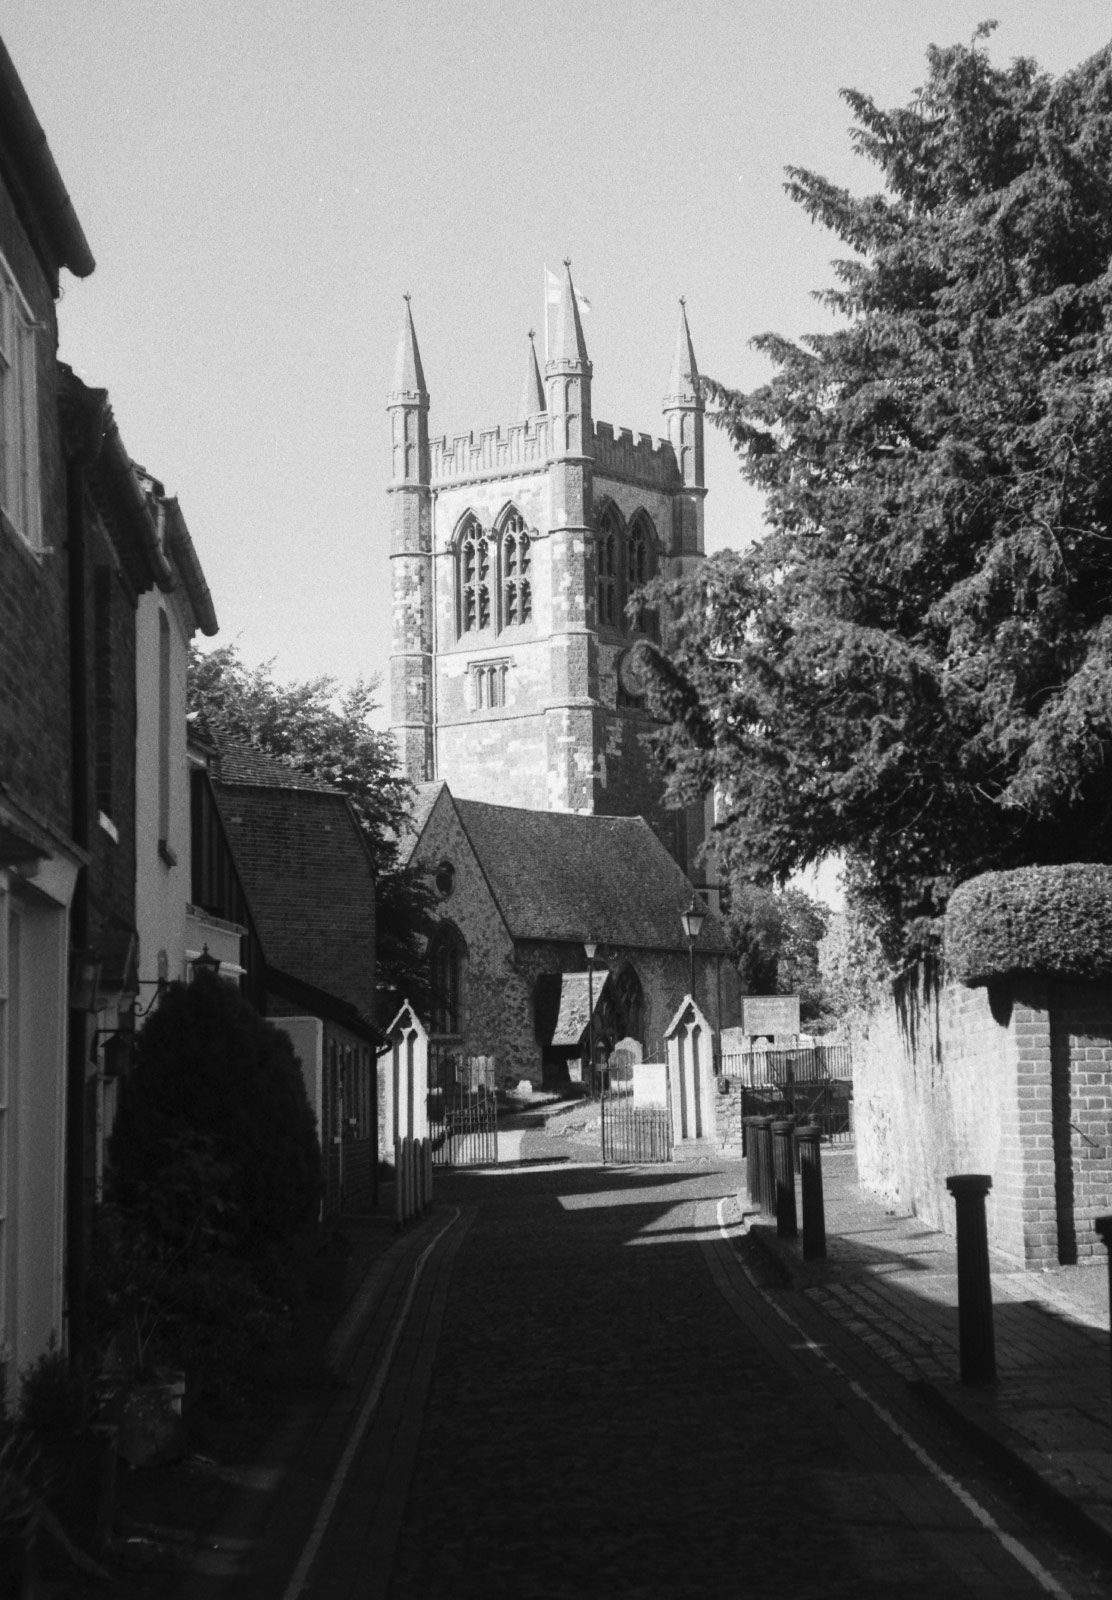 Church at end of street